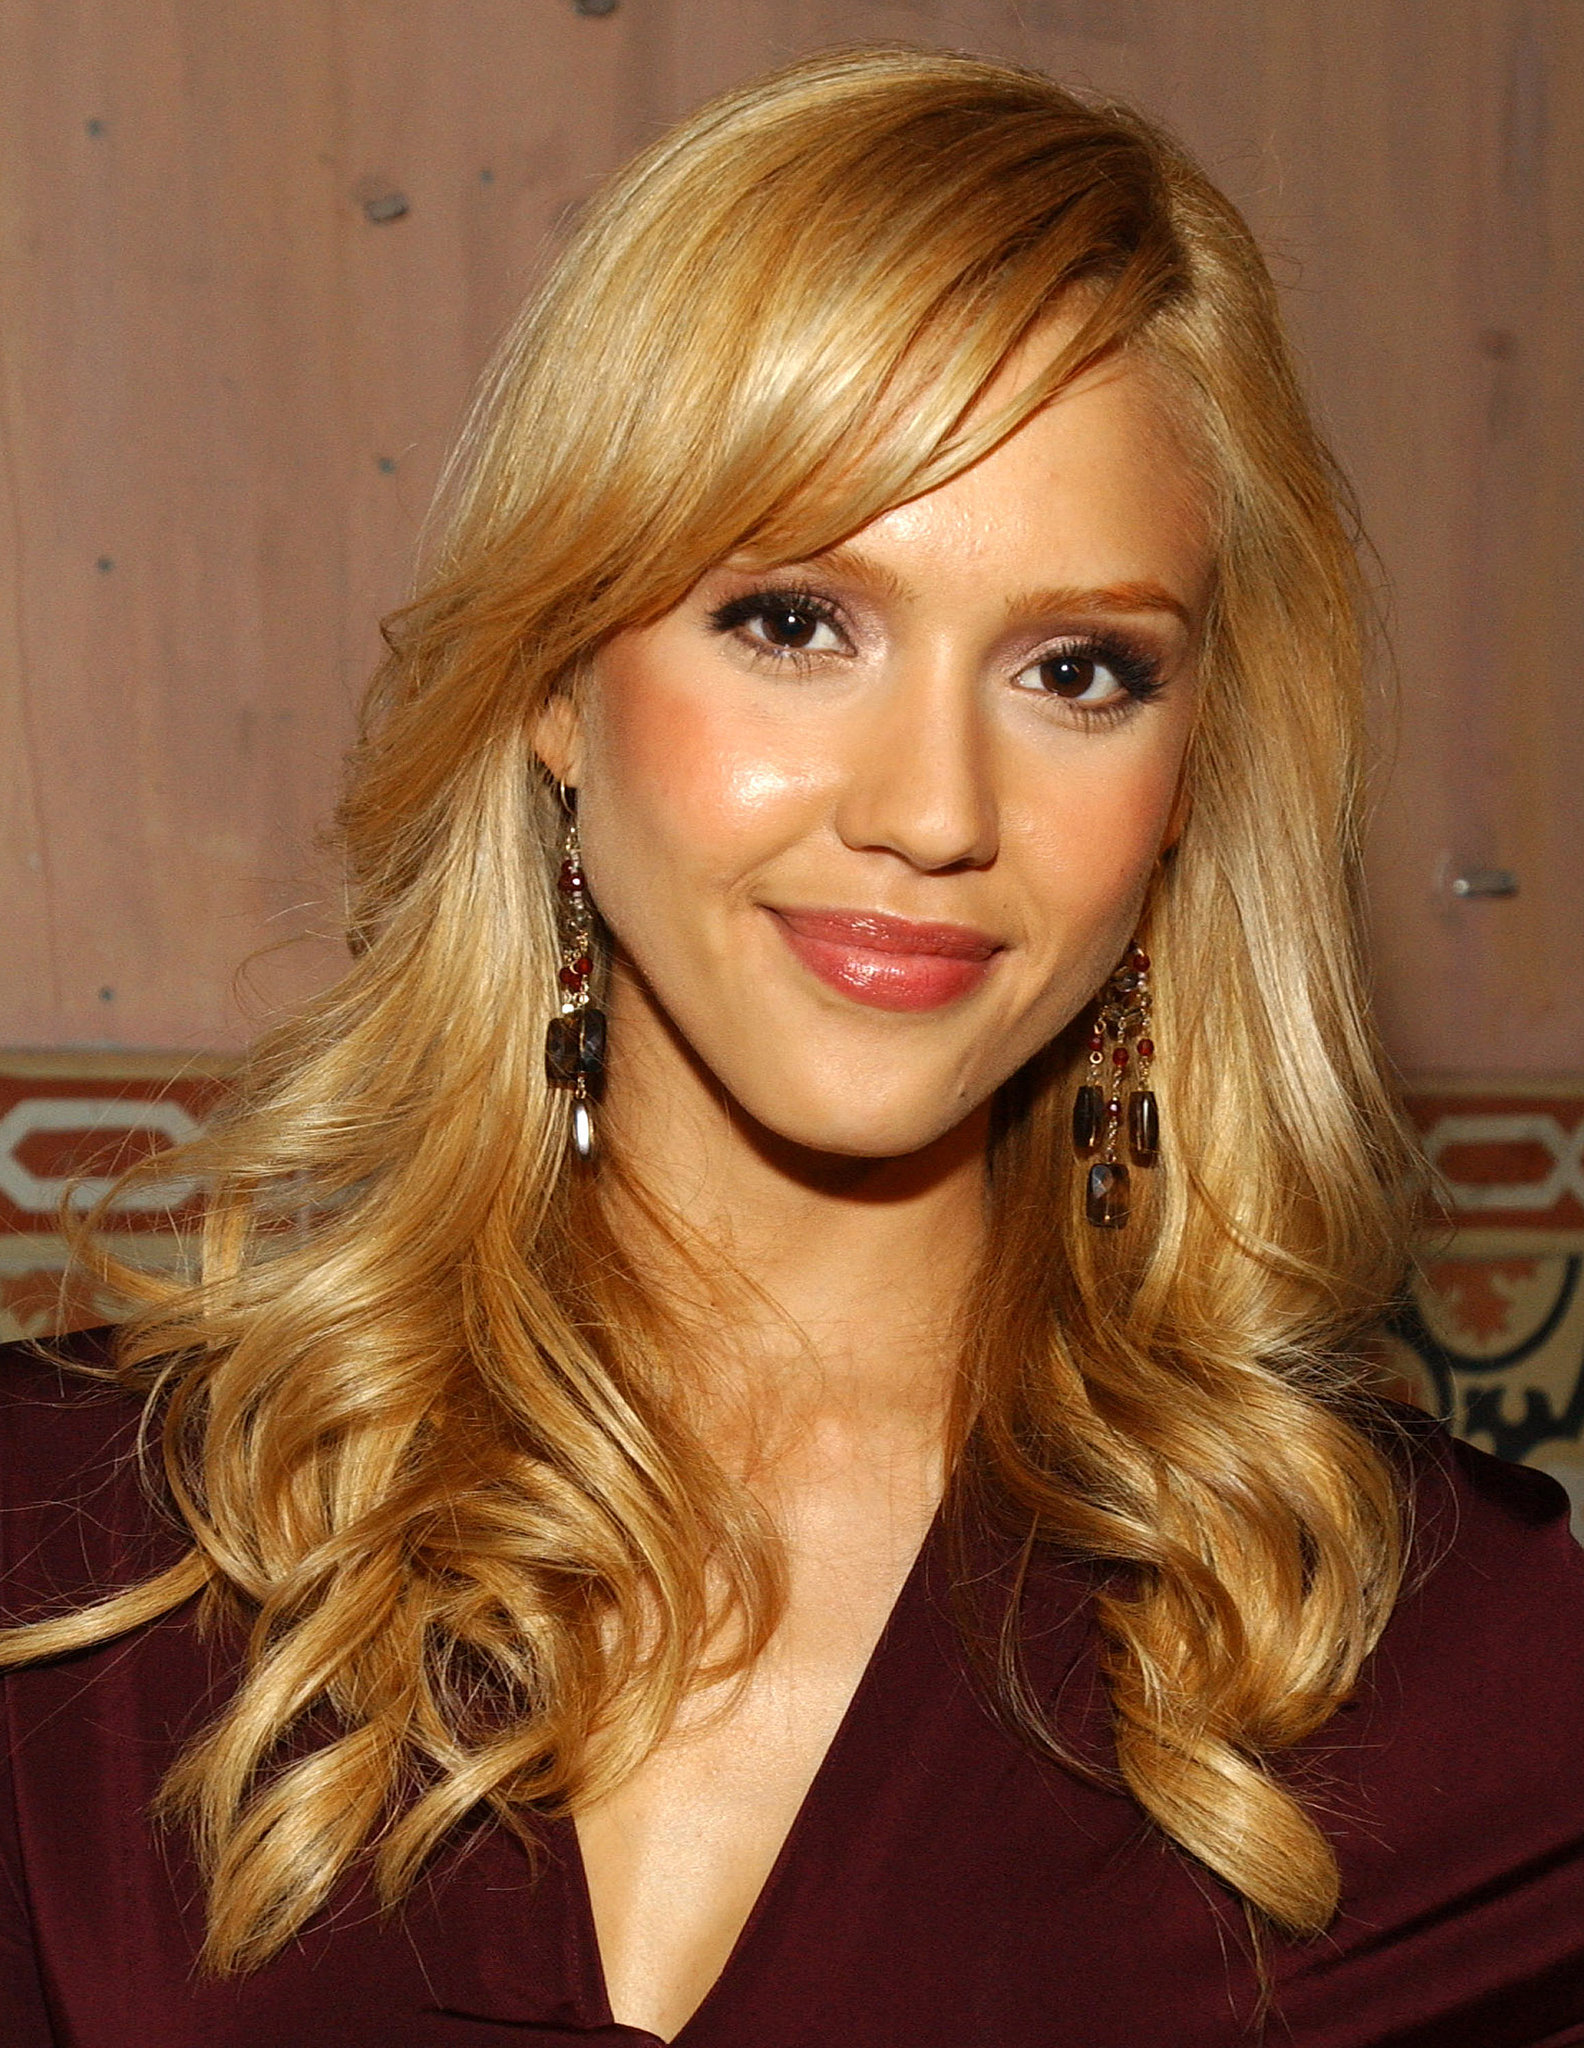 Jessica Alba Blonde Highlights 2013 Gm6fo